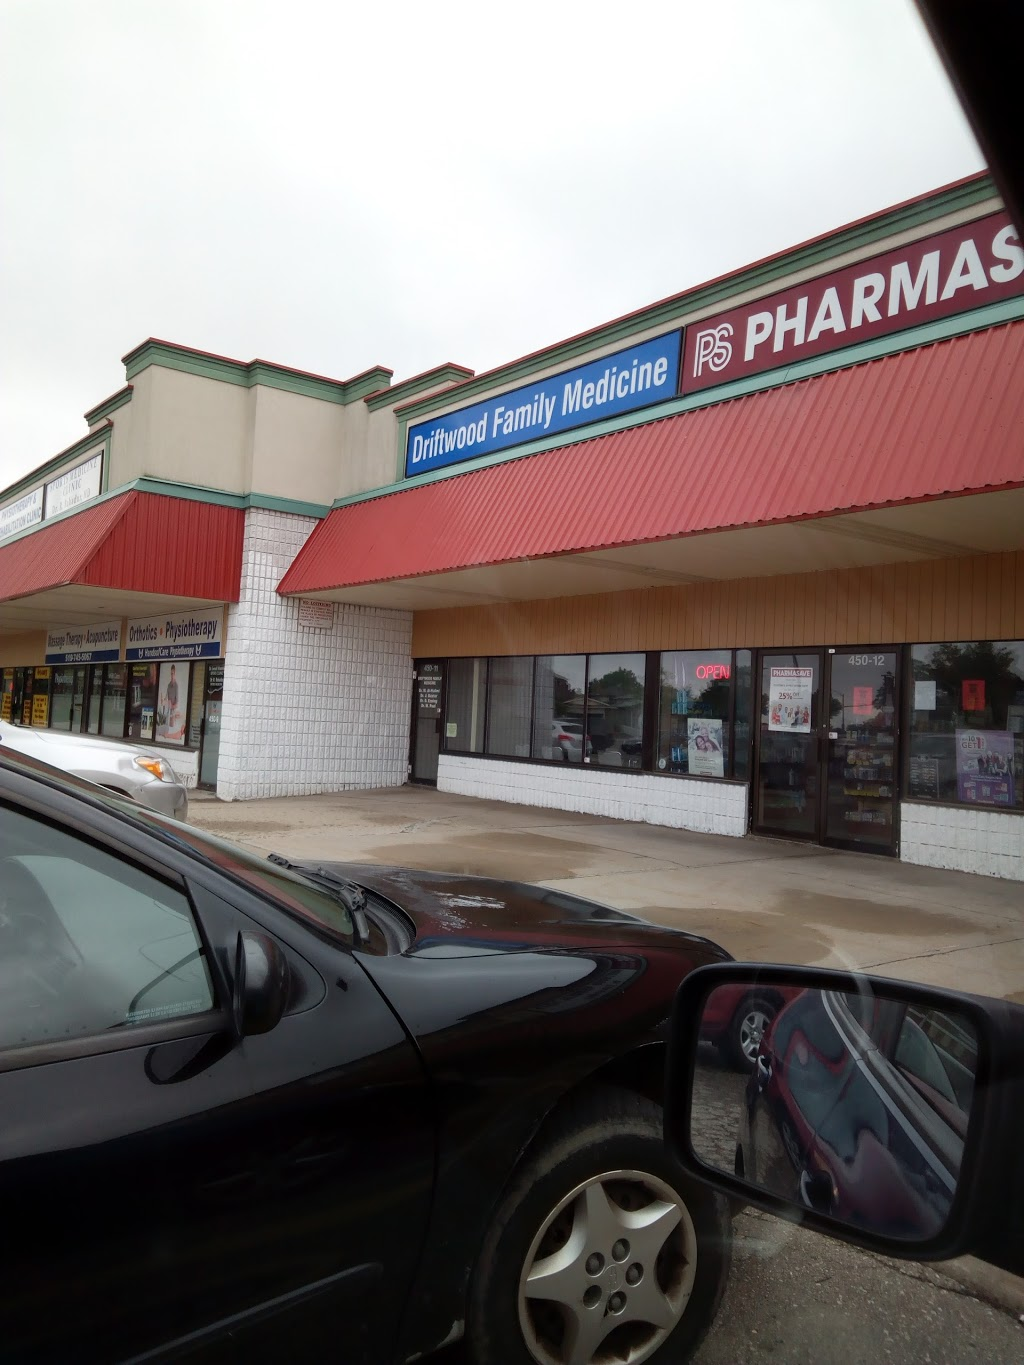 Driftwood Family Medical | doctor | 450 Westheights Dr, Kitchener, ON N2N 1Y8, Canada | 5197254070 OR +1 519-725-4070